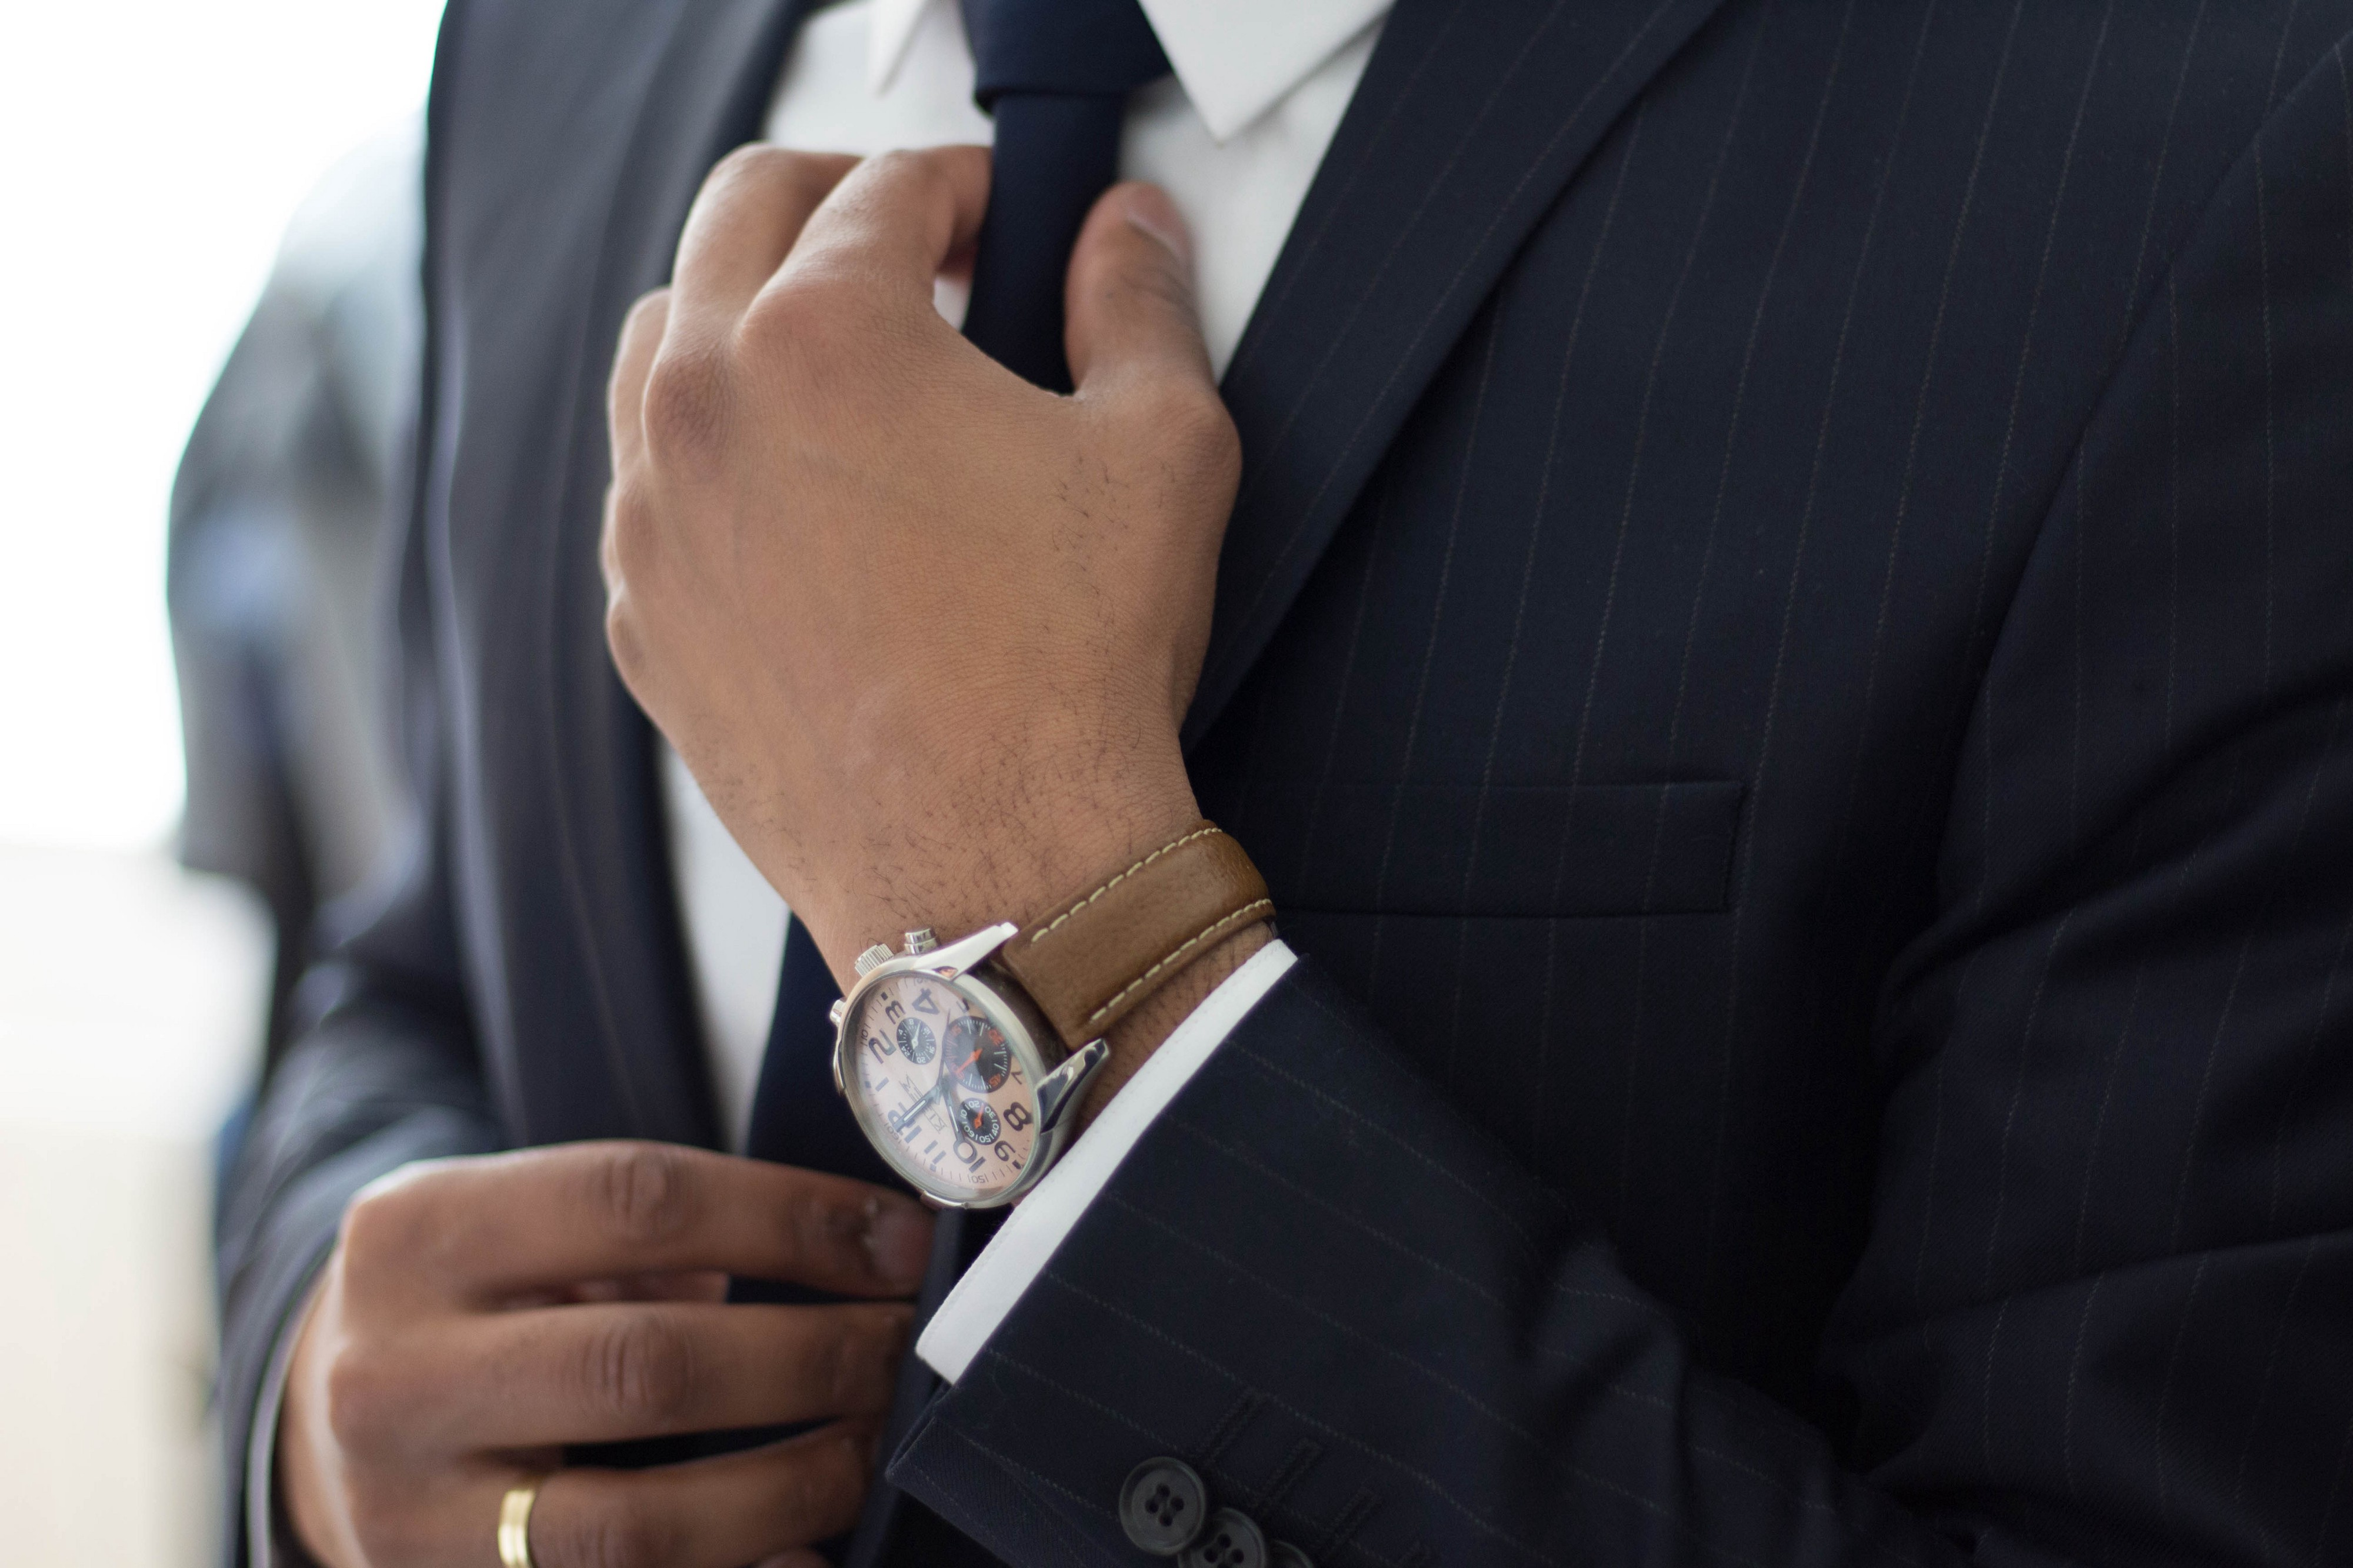 An elegantly dressed man in a suit adjusts his tie, exposing his expensive looking watch and wedding ring.